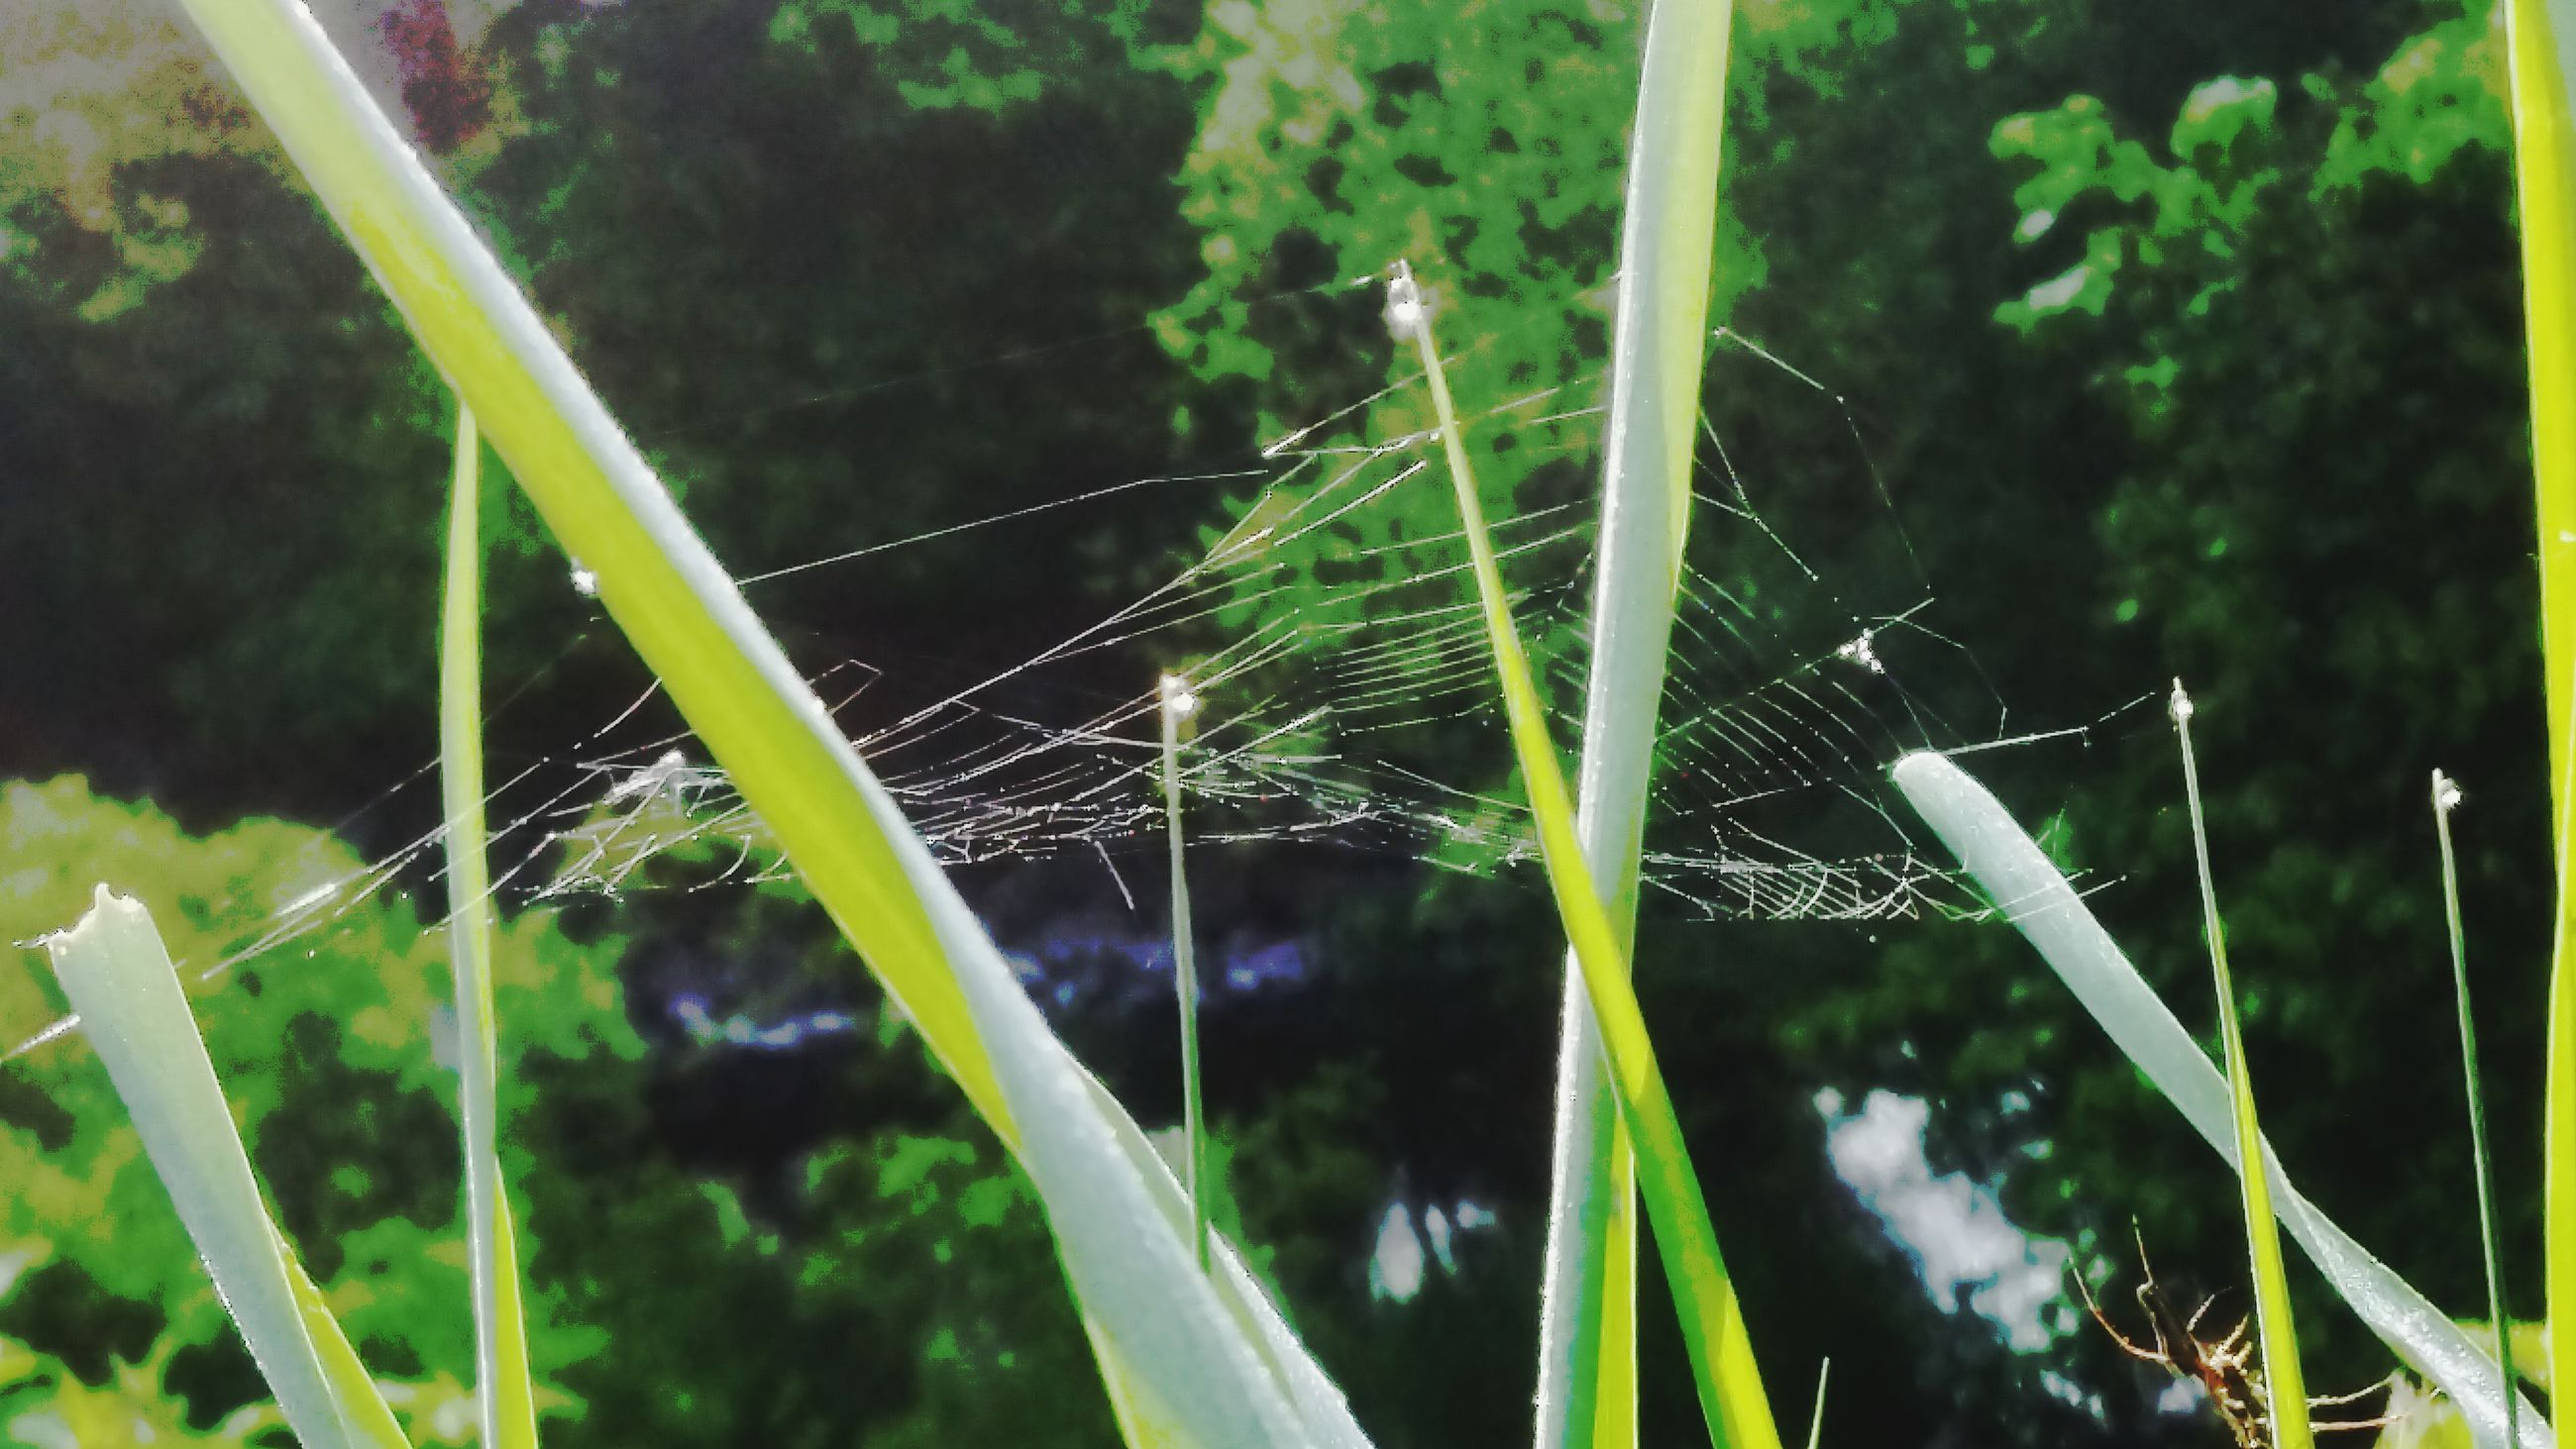 animal themes, one animal, green color, animals in the wild, grass, plant, wildlife, focus on foreground, close-up, growth, nature, blade of grass, insect, beauty in nature, green, outdoors, day, field, leaf, no people